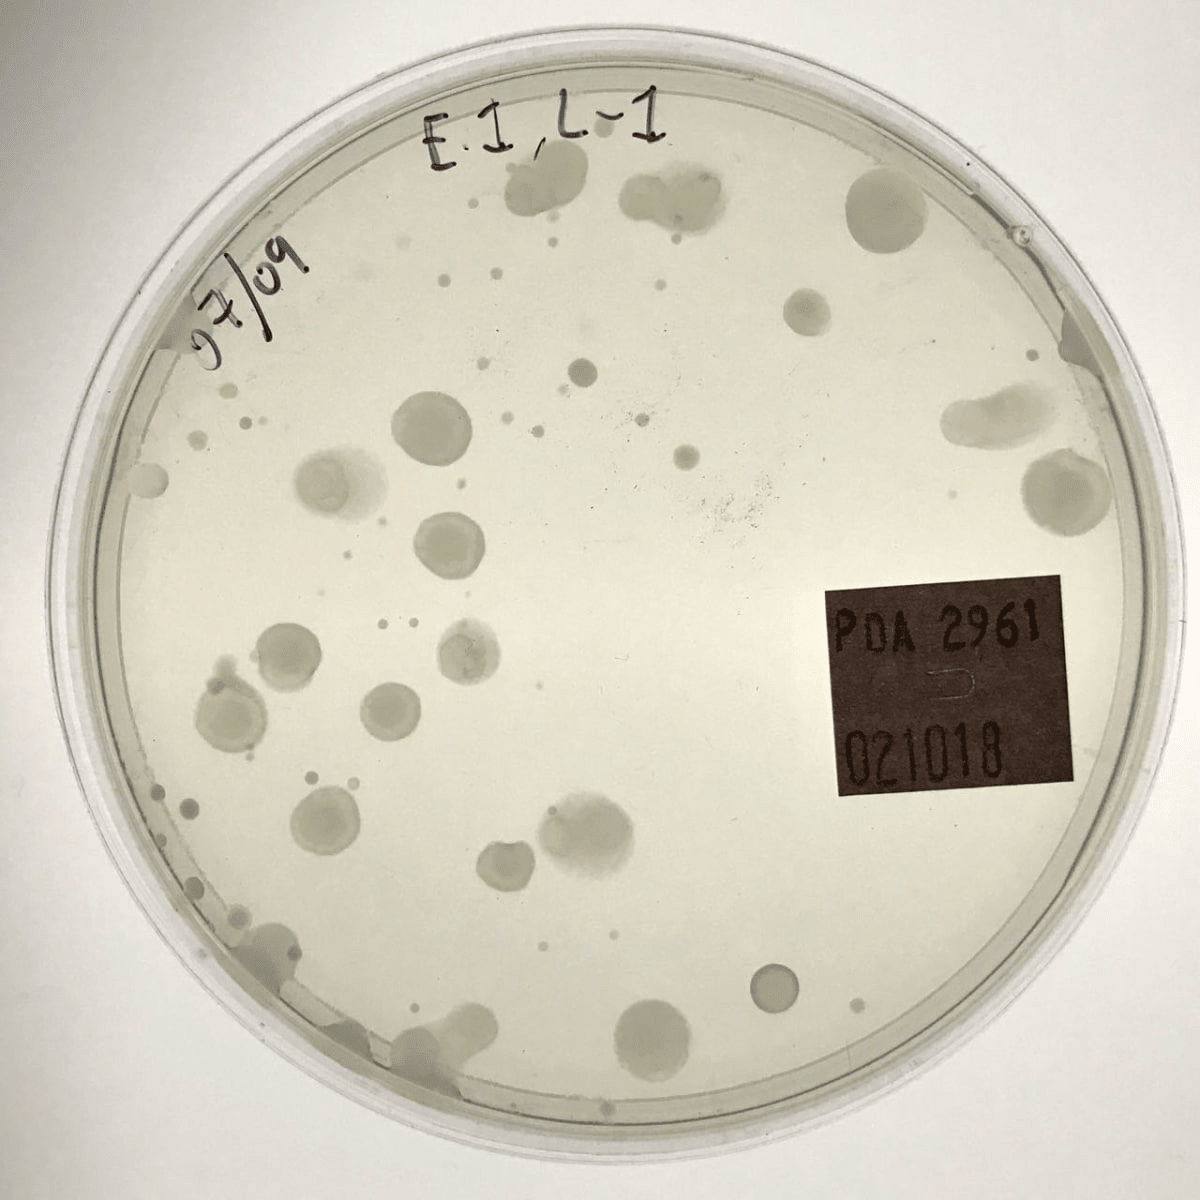 Candida albicans growing on the surface of a petri plate